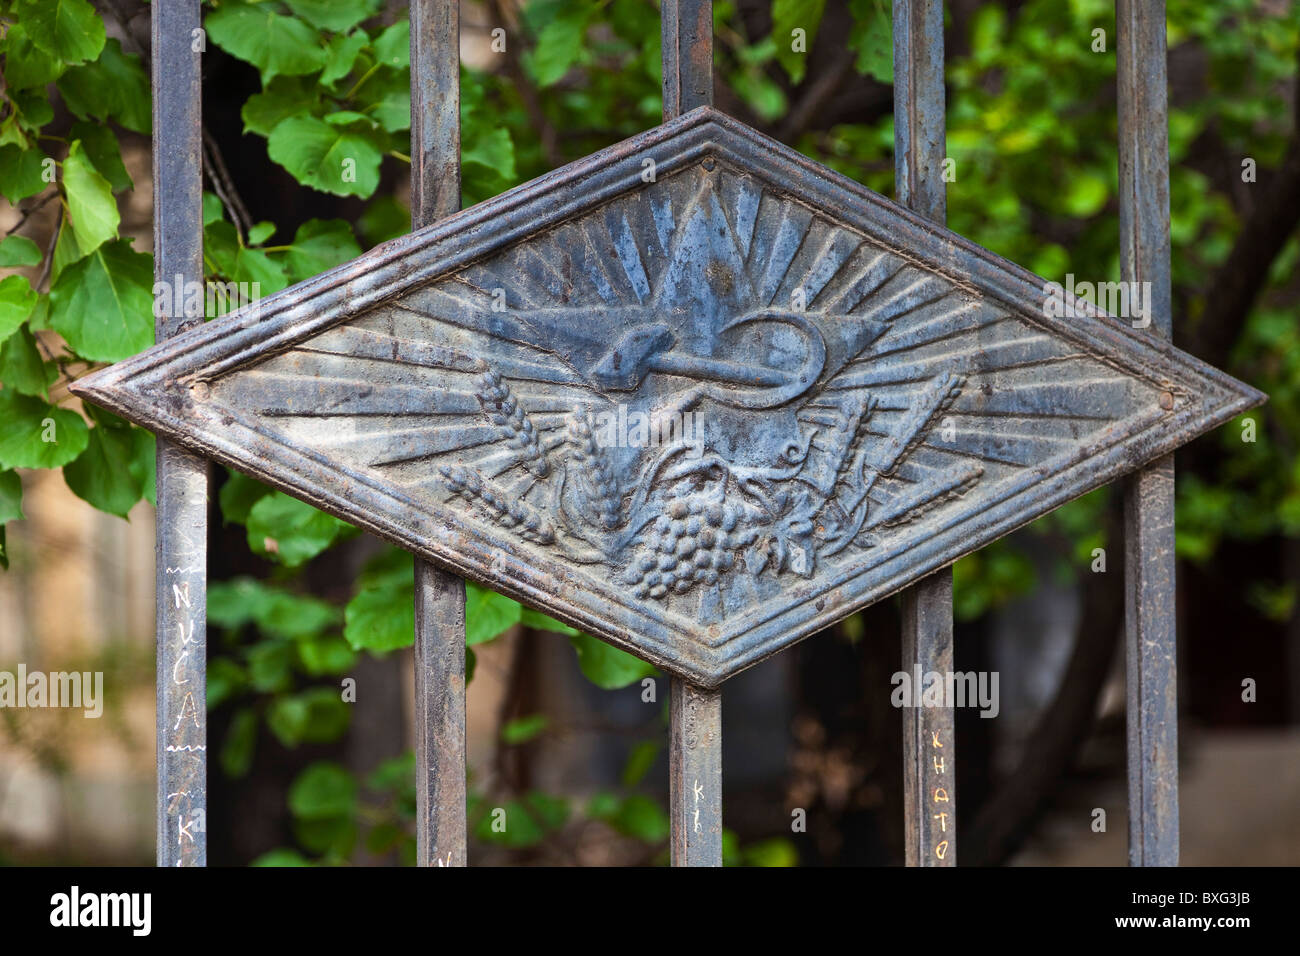 Cast iron hammer and sickle, a leftover from the Soviet Russian era, on a fence in Tbilisi, Georgia. JMH3966 - Stock Image